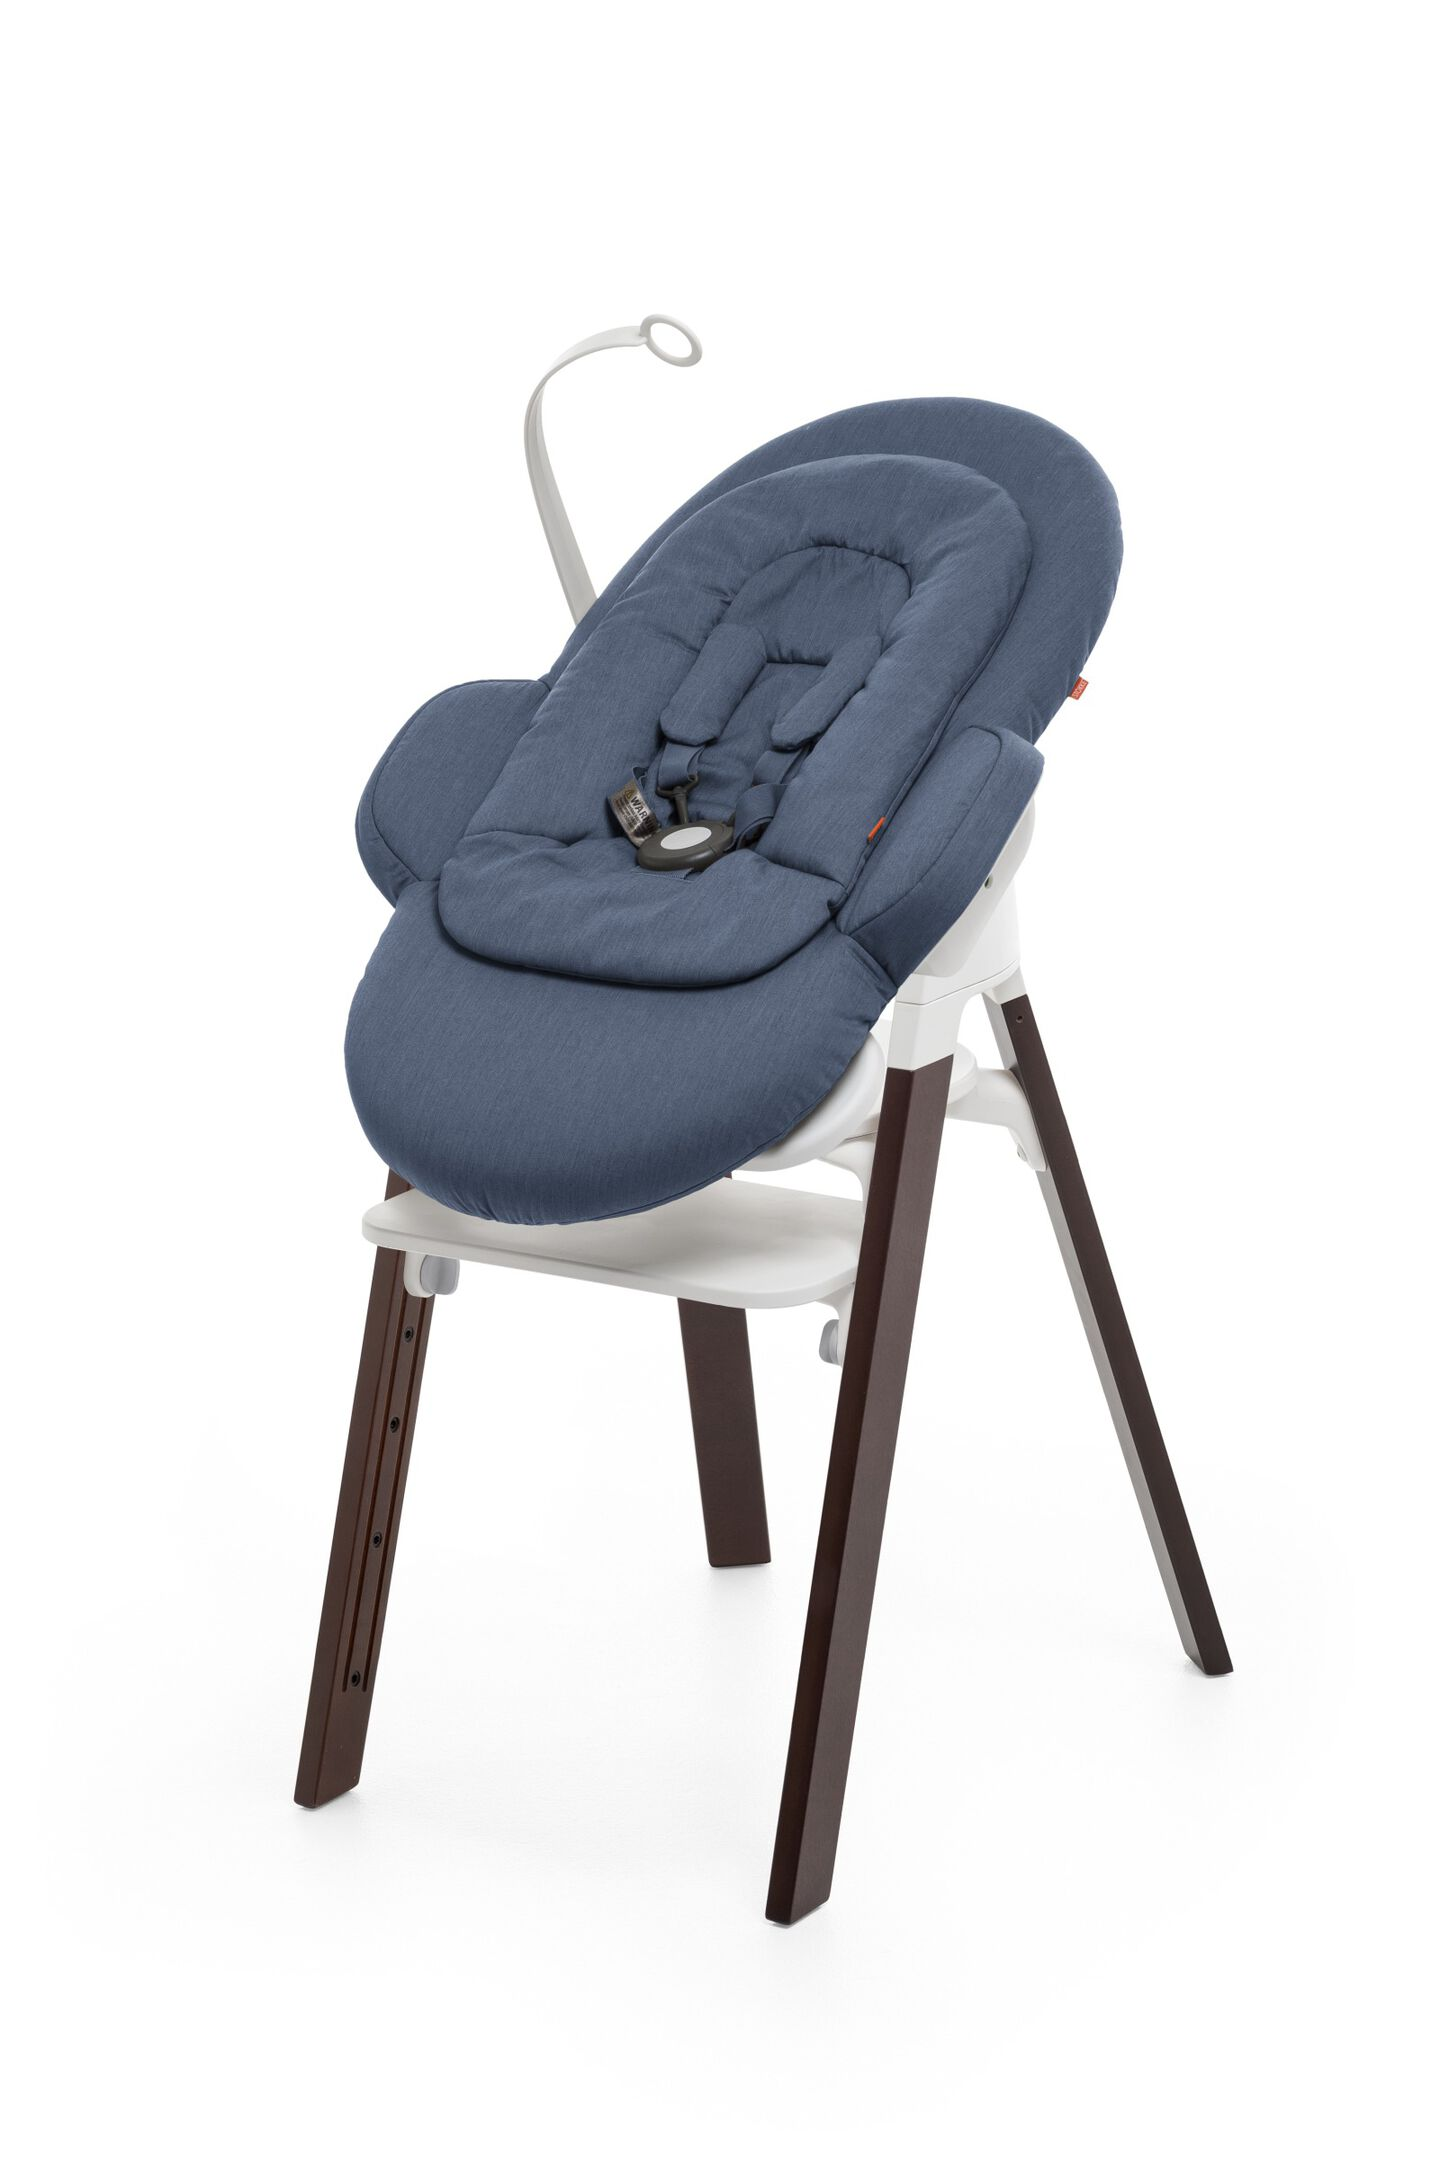 Bouncer, Blue. Mounted on Stokke Steps highchair.